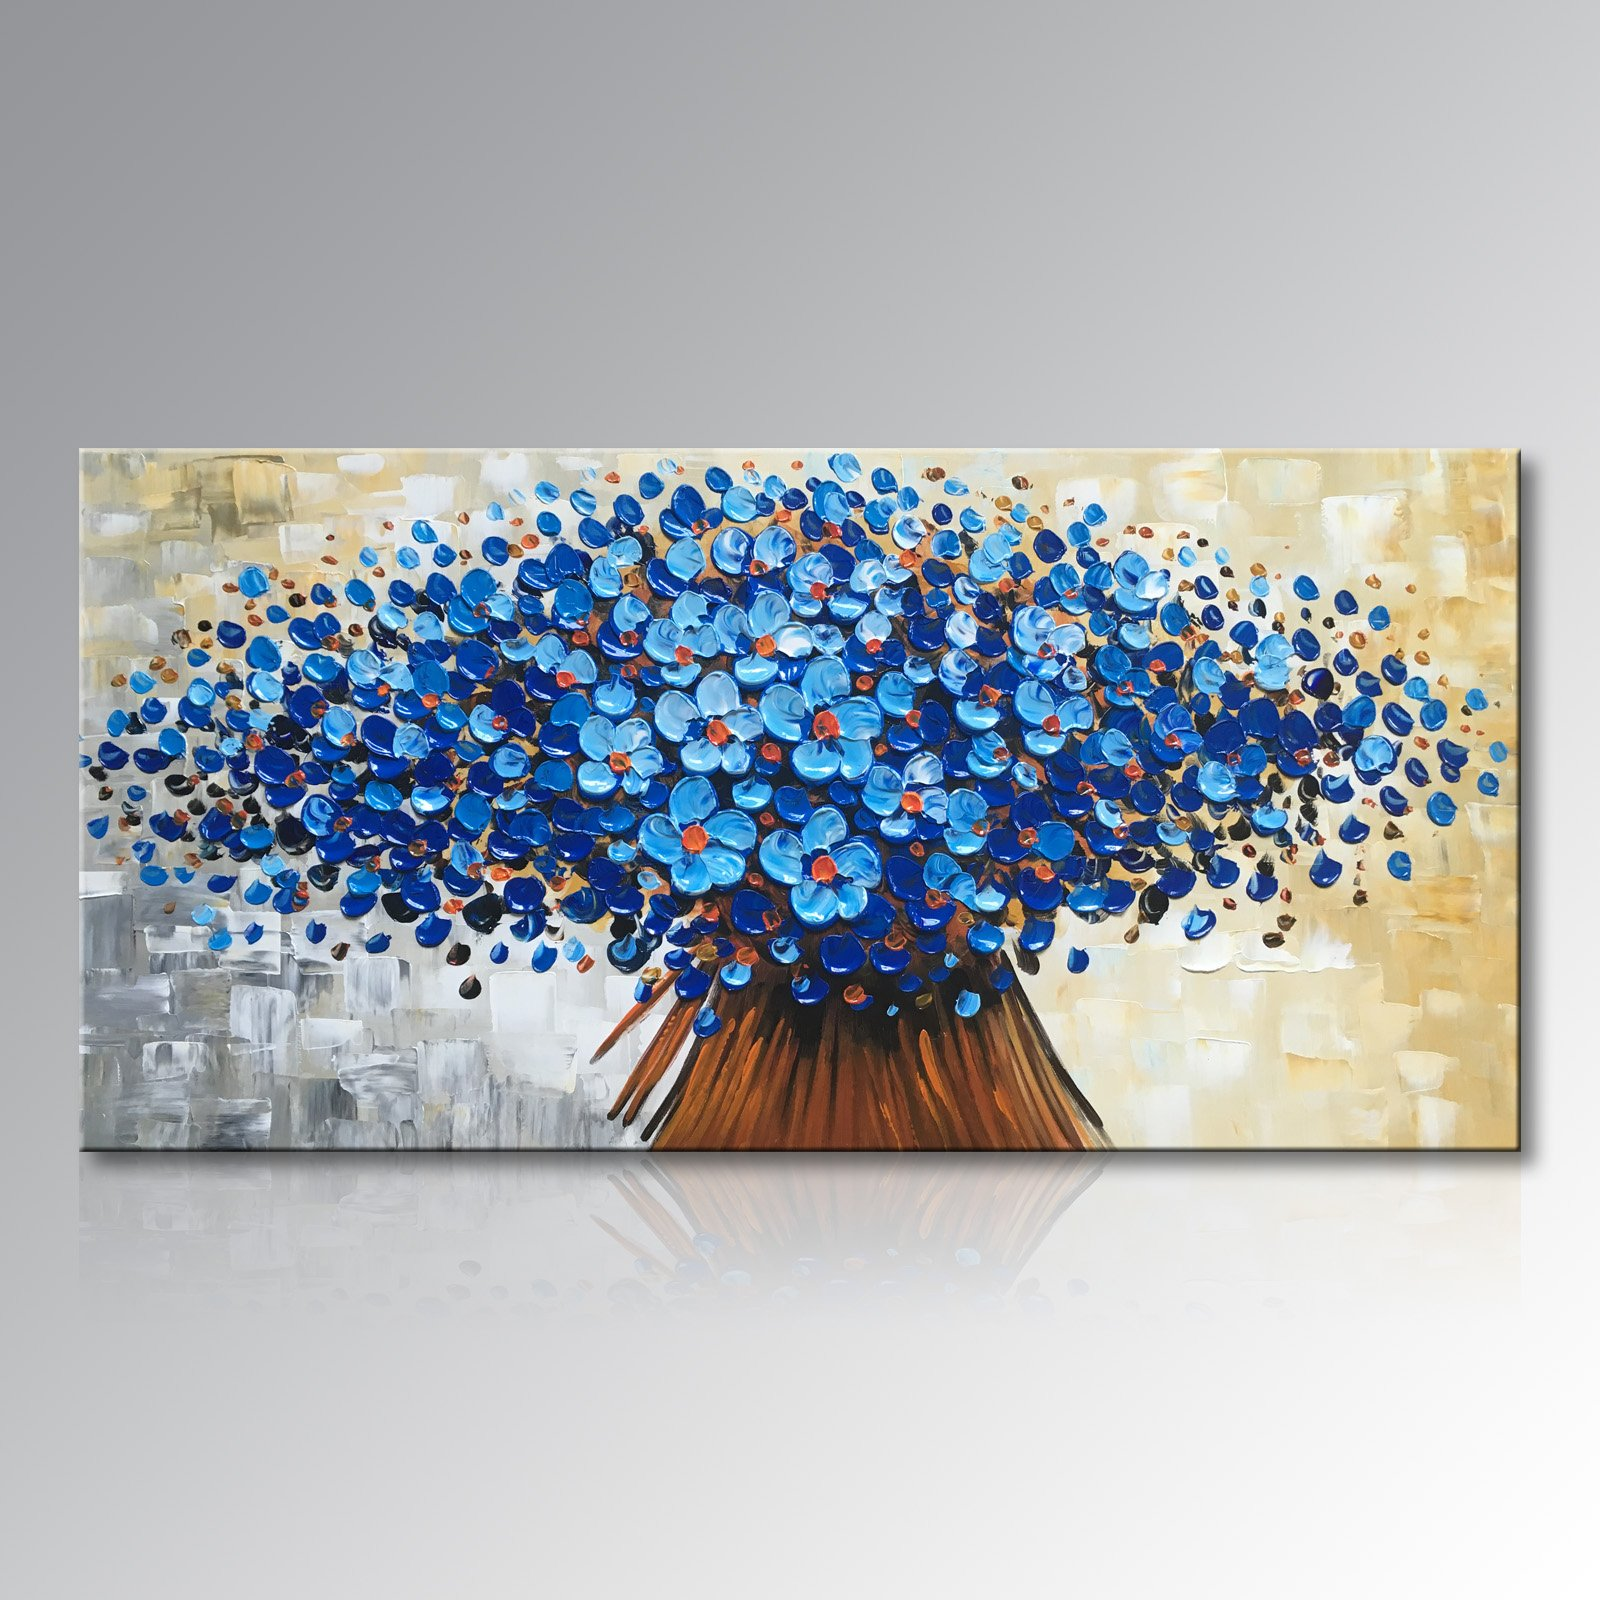 Winpeak Art Hand Painted Abstract Canvas Wall Art Modern Textured Blue Flower Oil Painting Contemporary Artwork Floral Hangings Stretched And Framed Ready to Hang (32'' W x 16'' H, Blue)